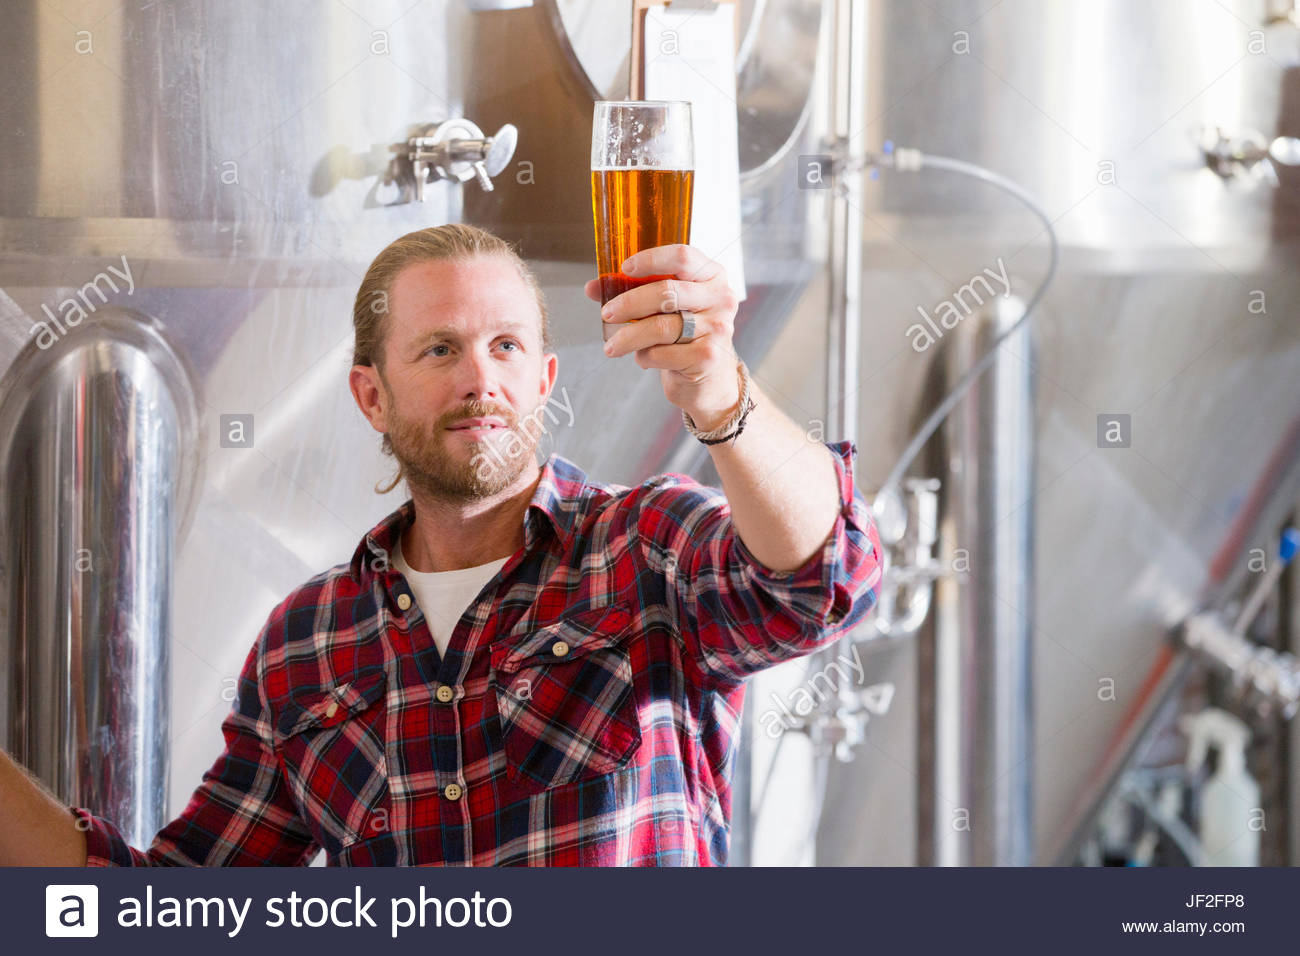 Male Brewery Worker Quality Checking Beer Sample - Stock Image